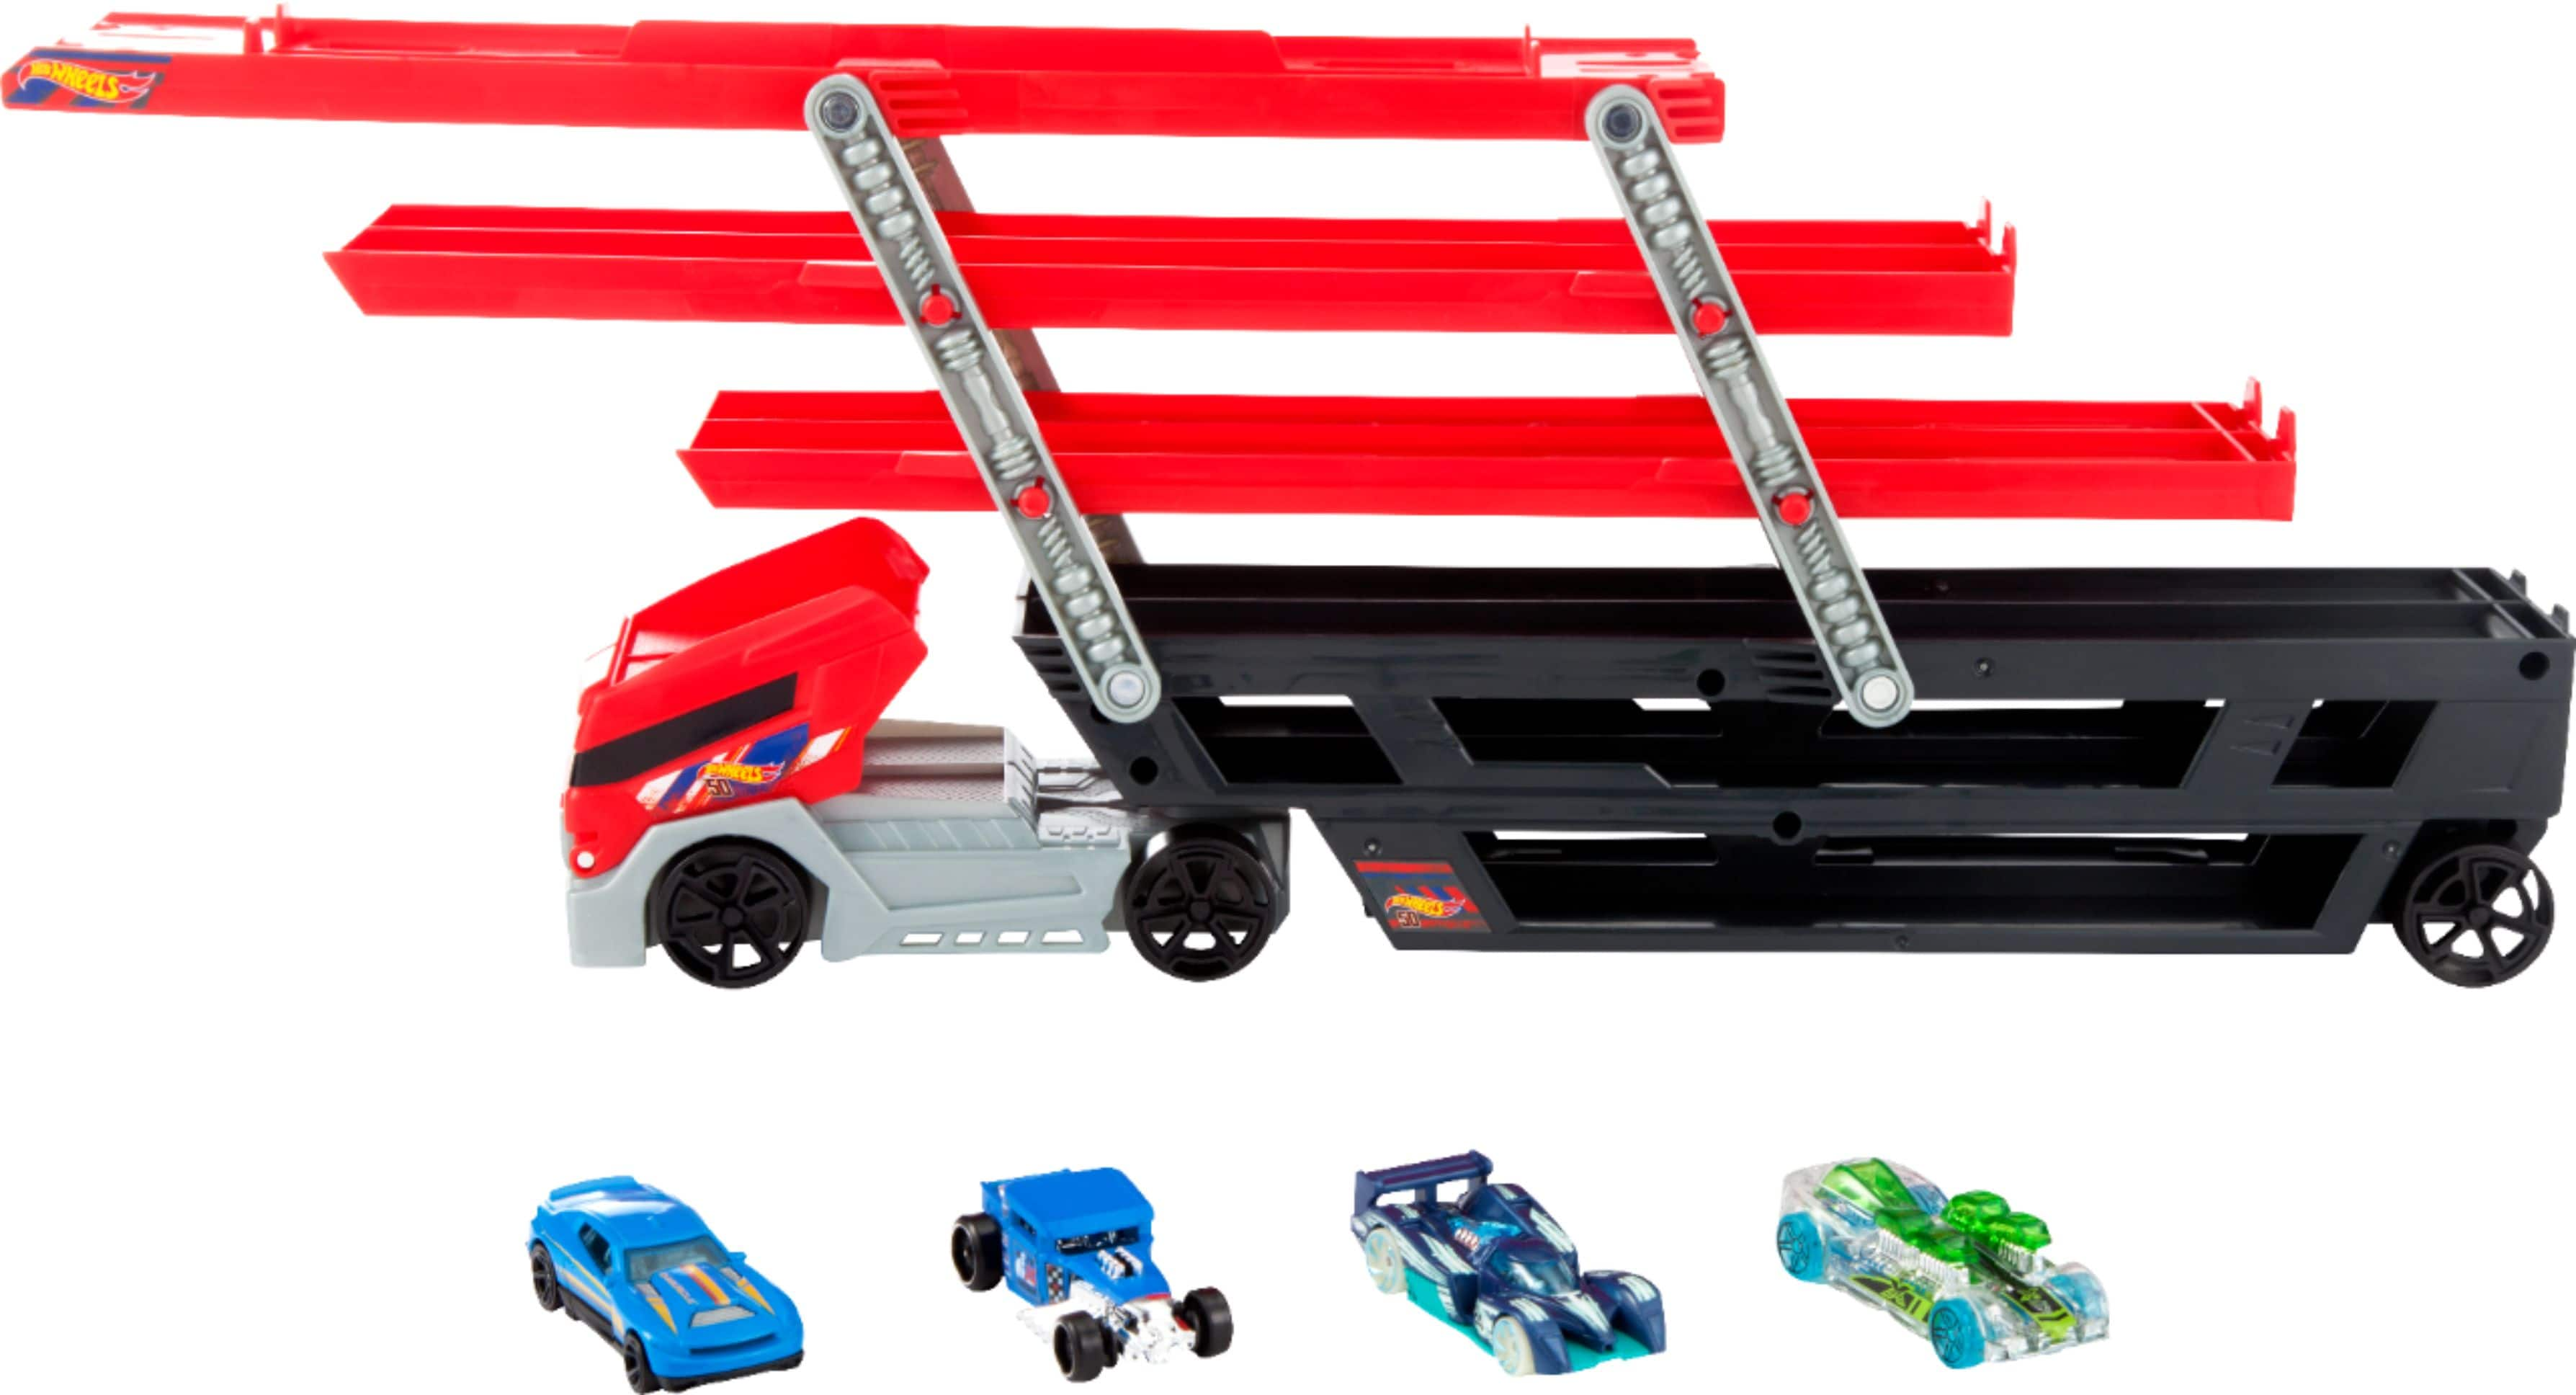 Hot Wheels - Mega Hauler Truck with 4 Cars - Red/Black $10.99 Free Pickup